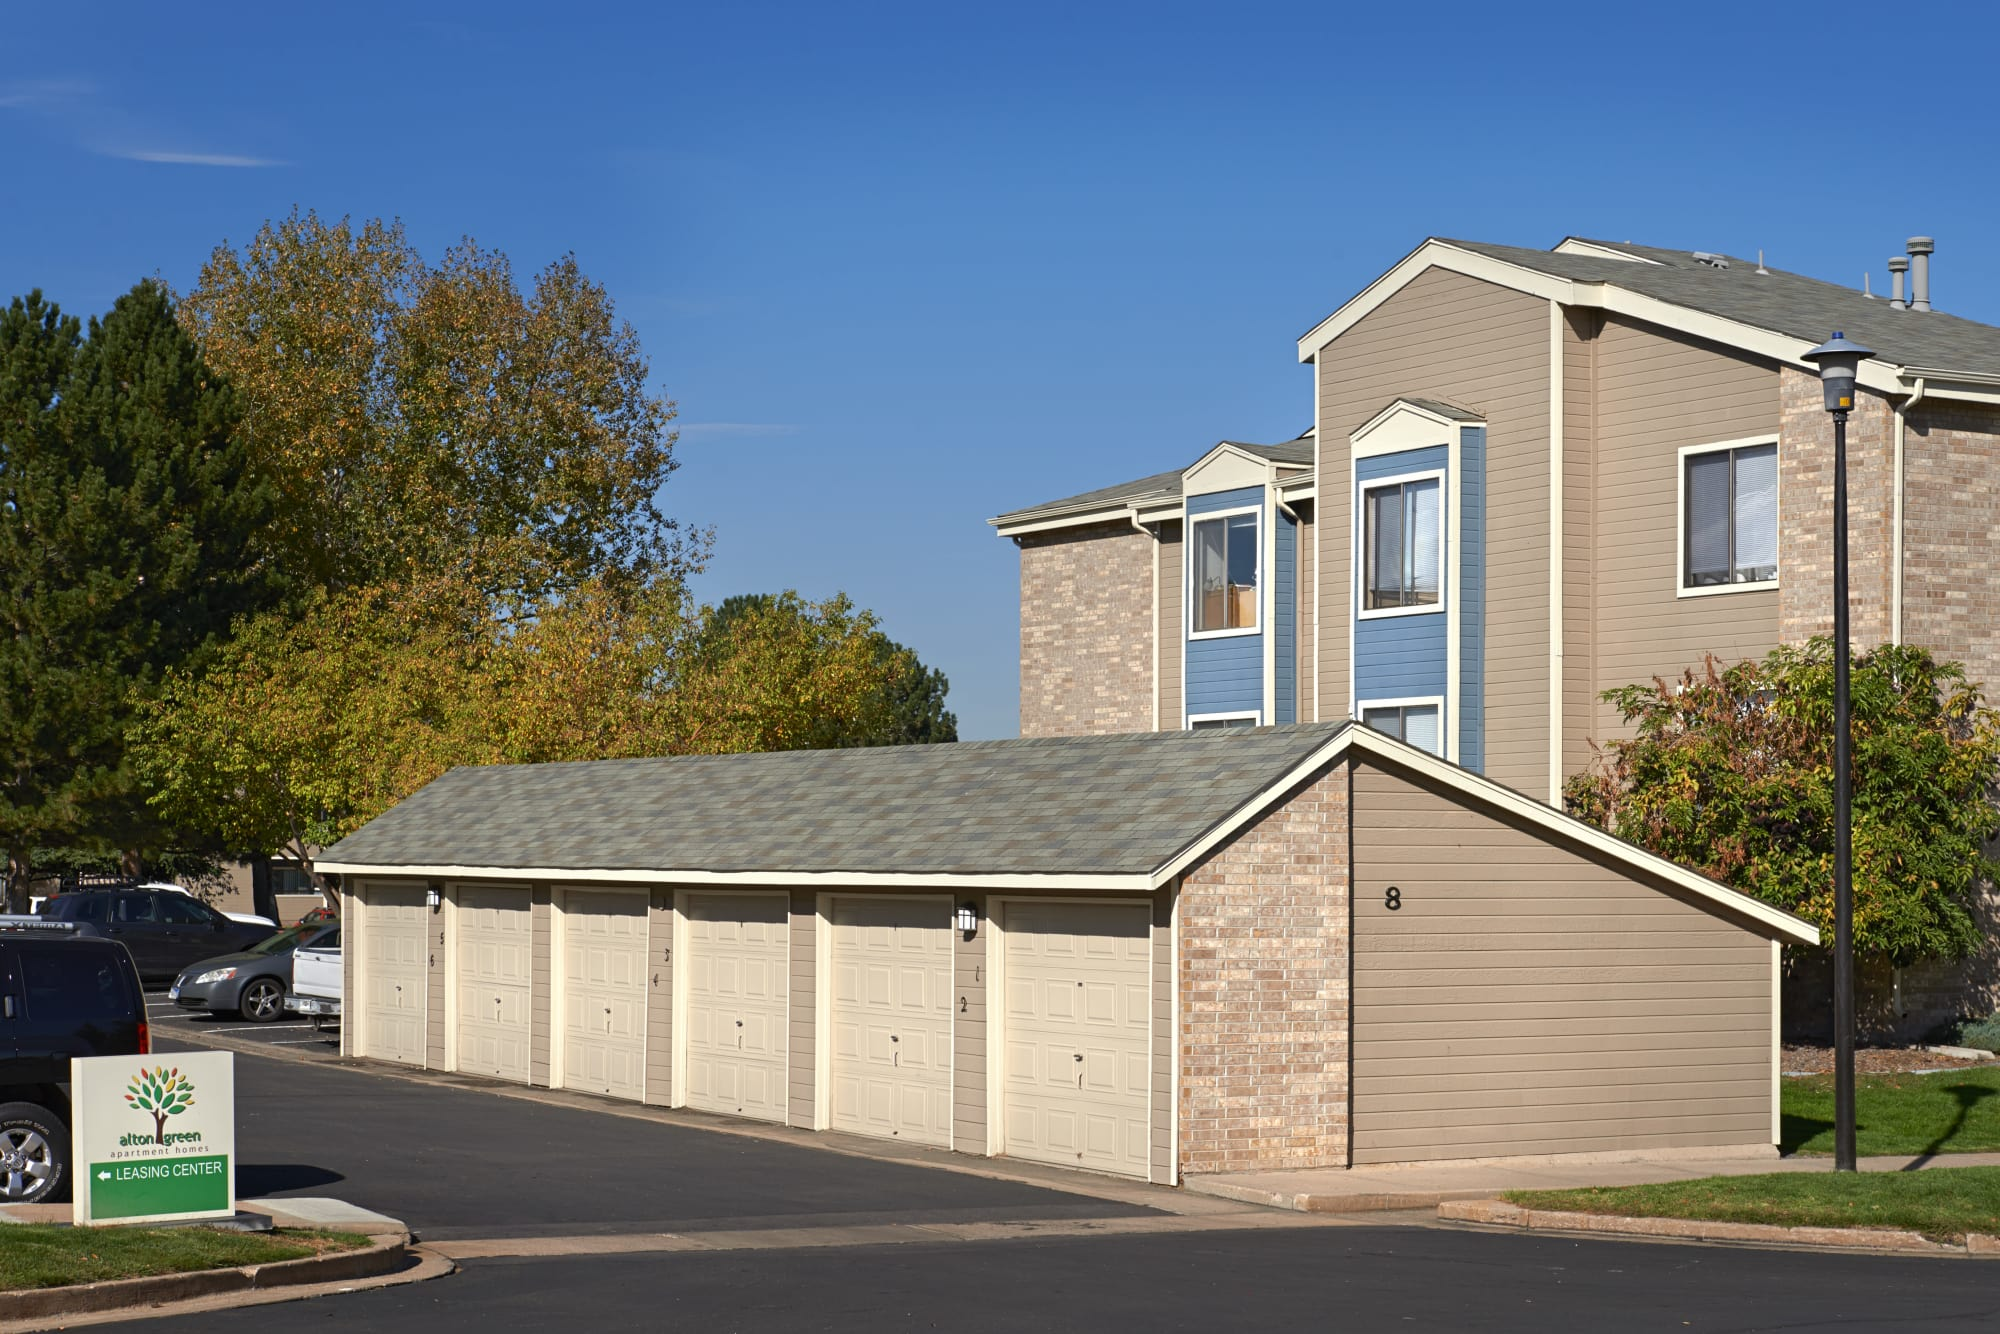 Garages at Alton Green Apartments in Denver, CO